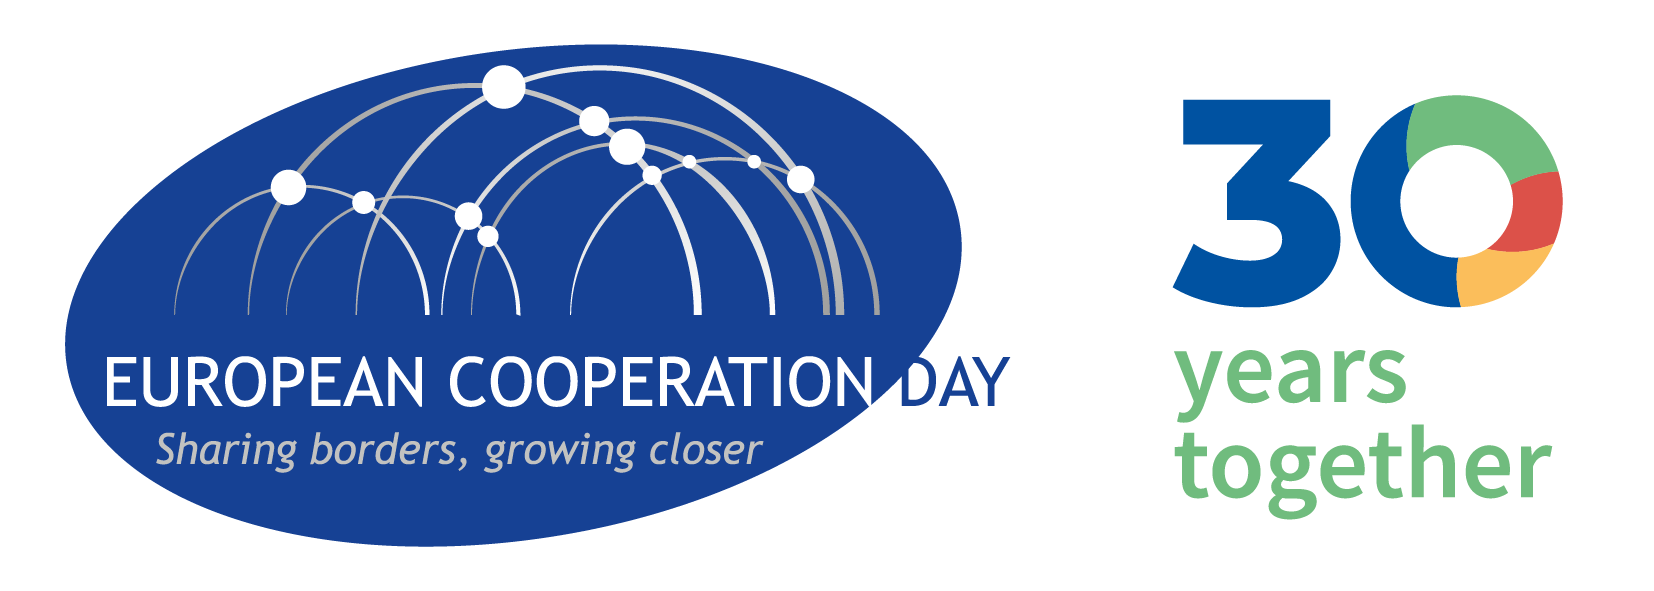 European Cooperation Day, 30 years together - Logo